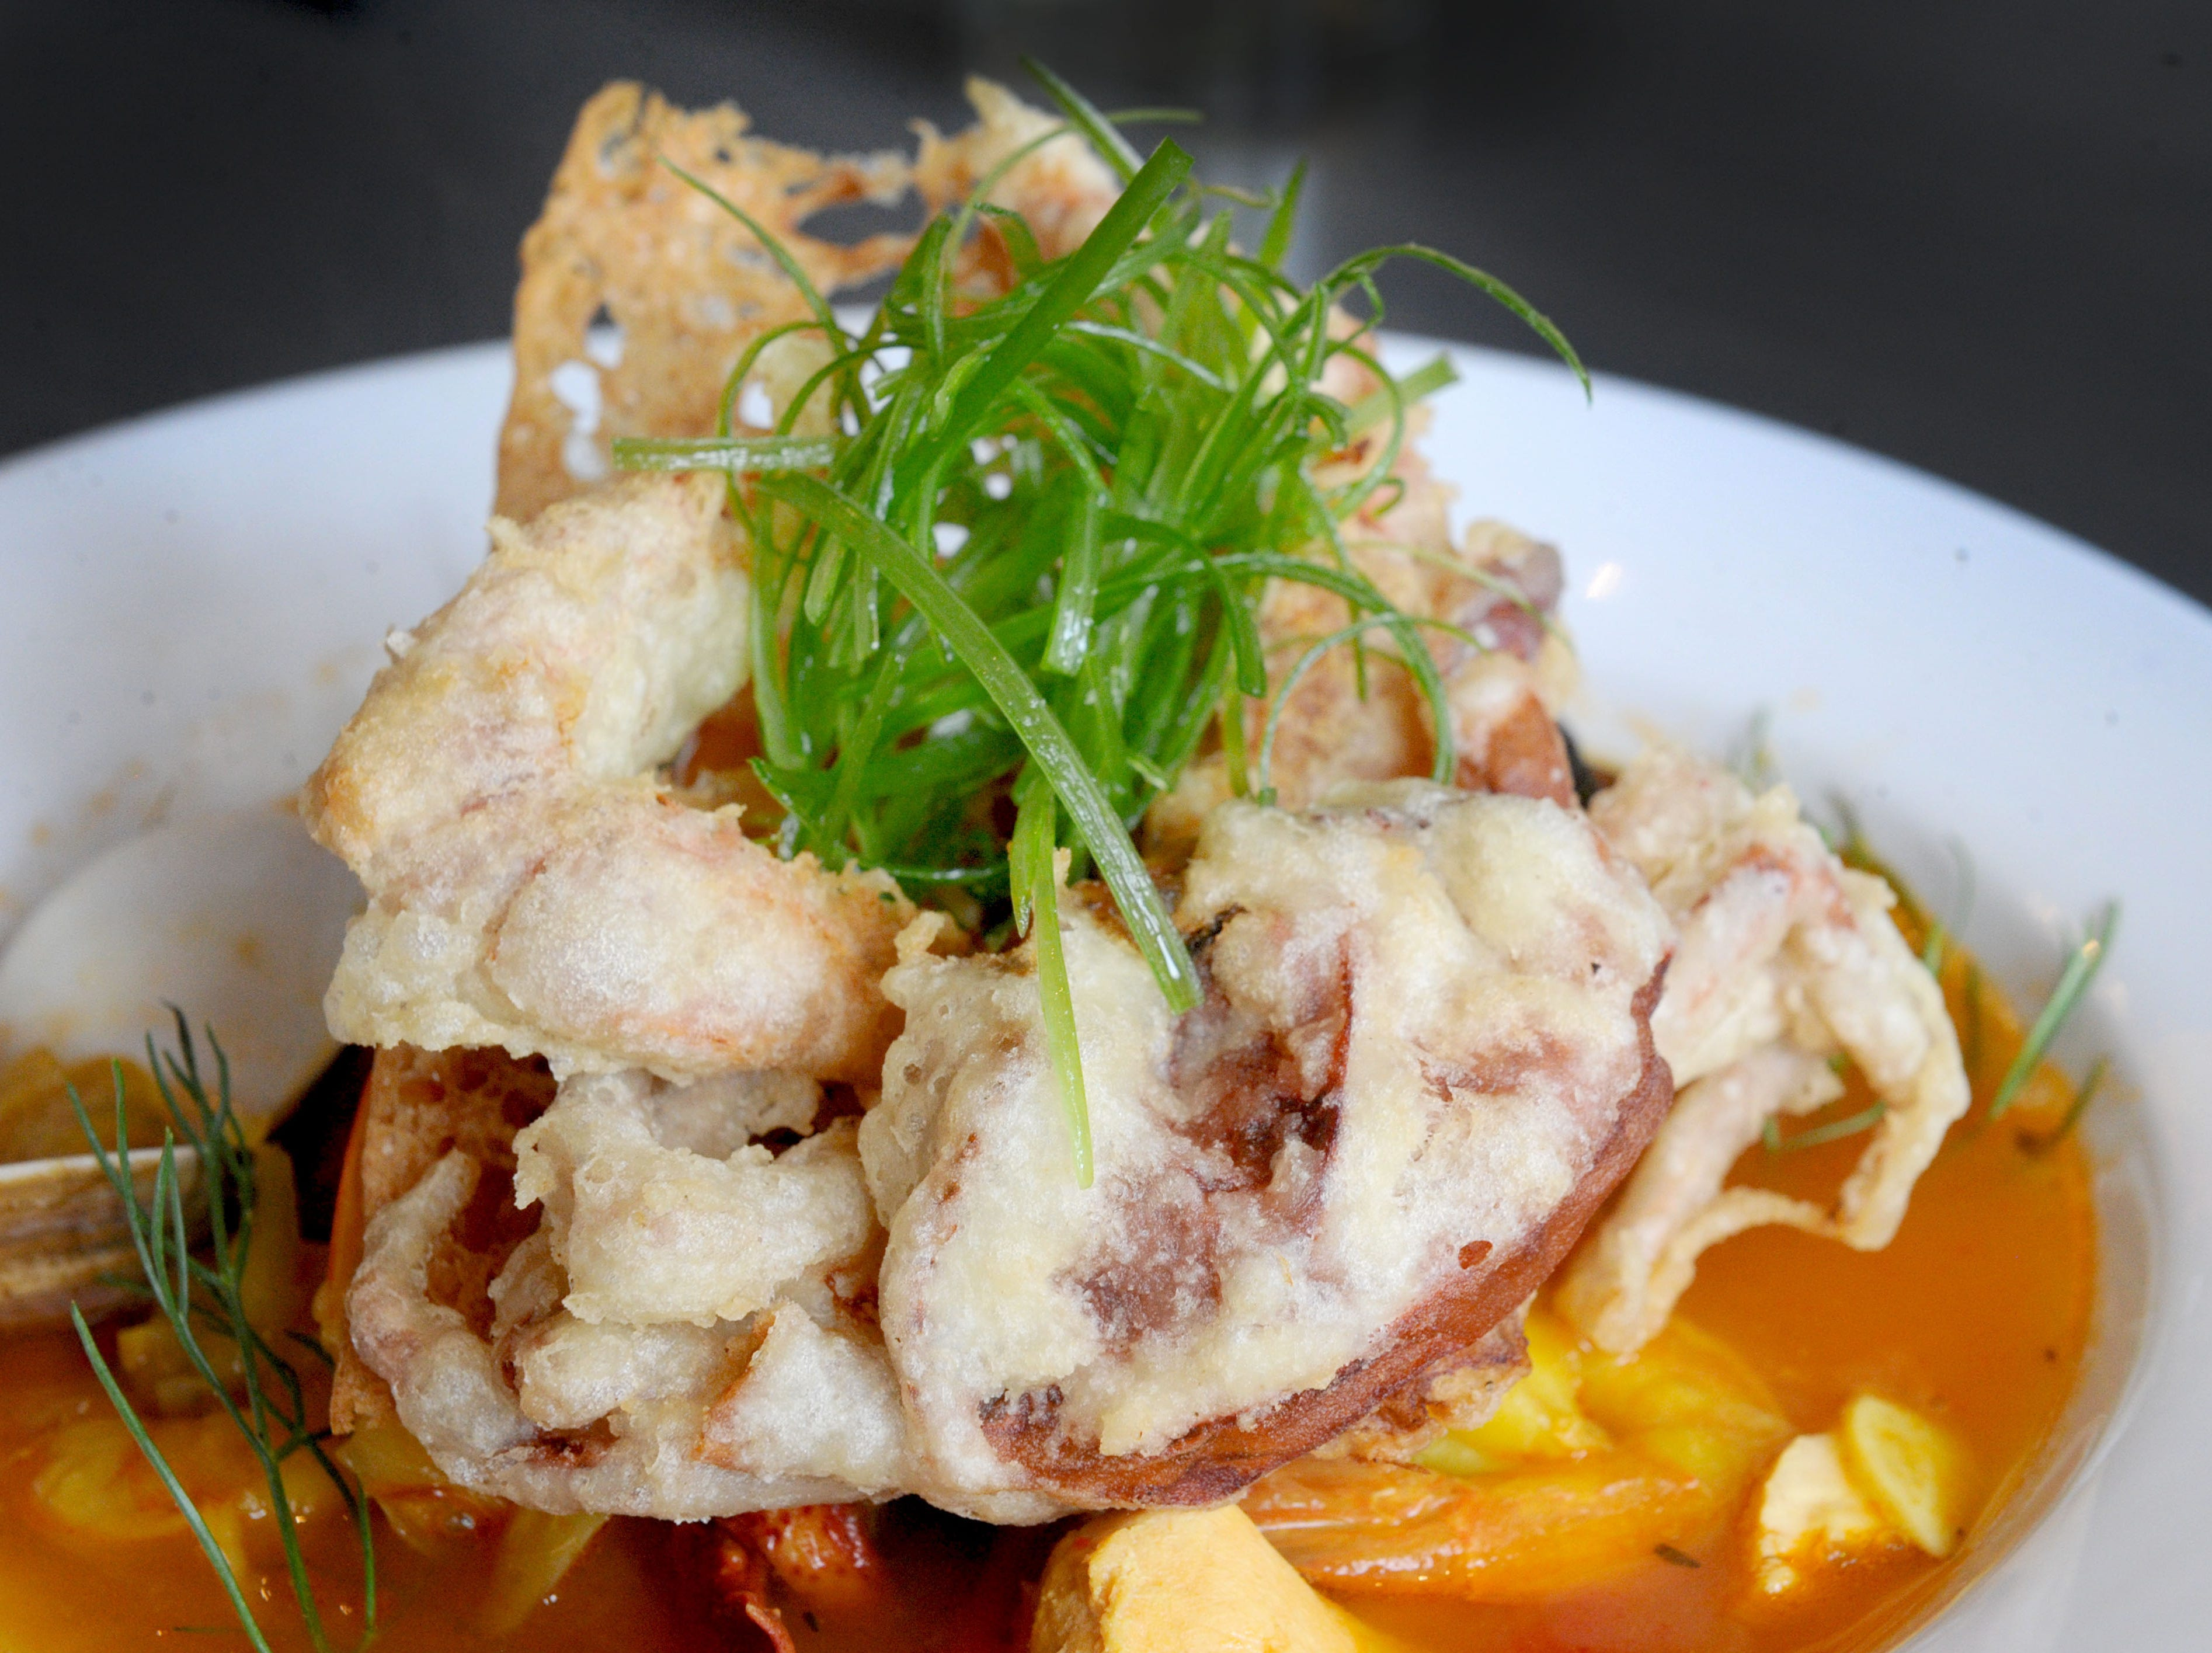 The fresh soft shell crab with seafood medley is prepared at Slate Bistro & Craft Bar in Camarillo.